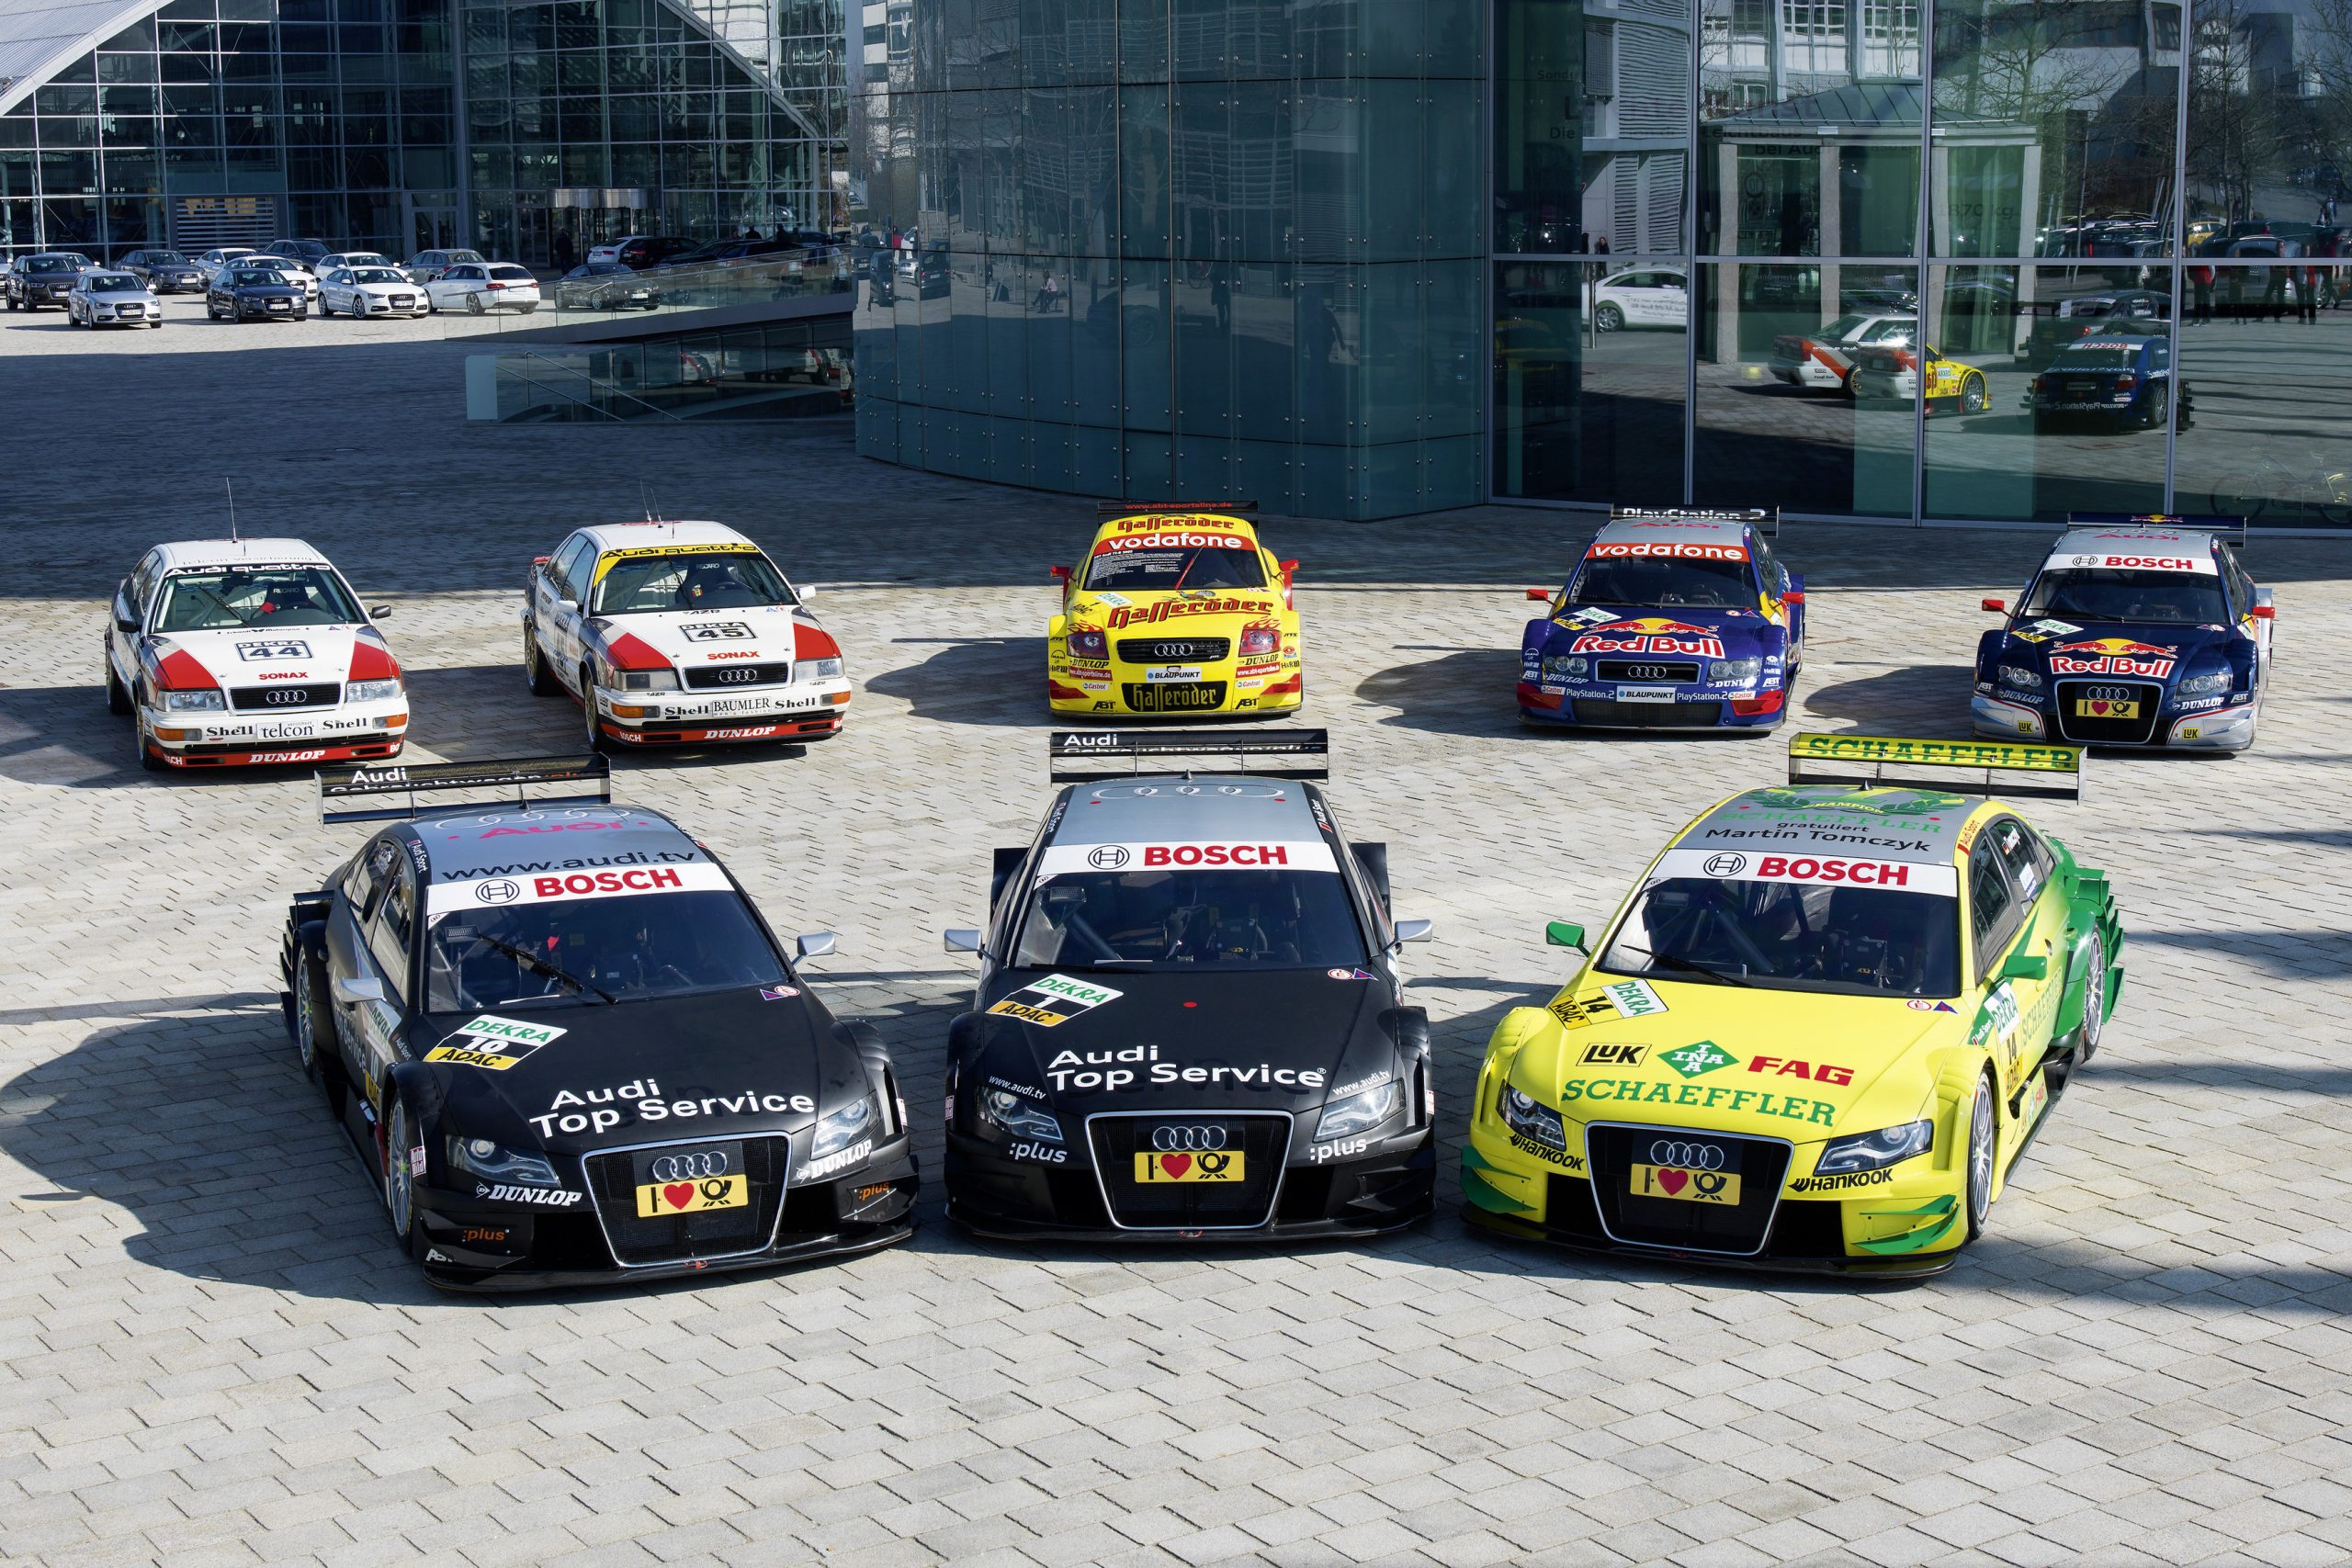 2011: The DTM winning cars from 1990, 1991, 2002, 2004, 2007, 2008, 2009 and 2011